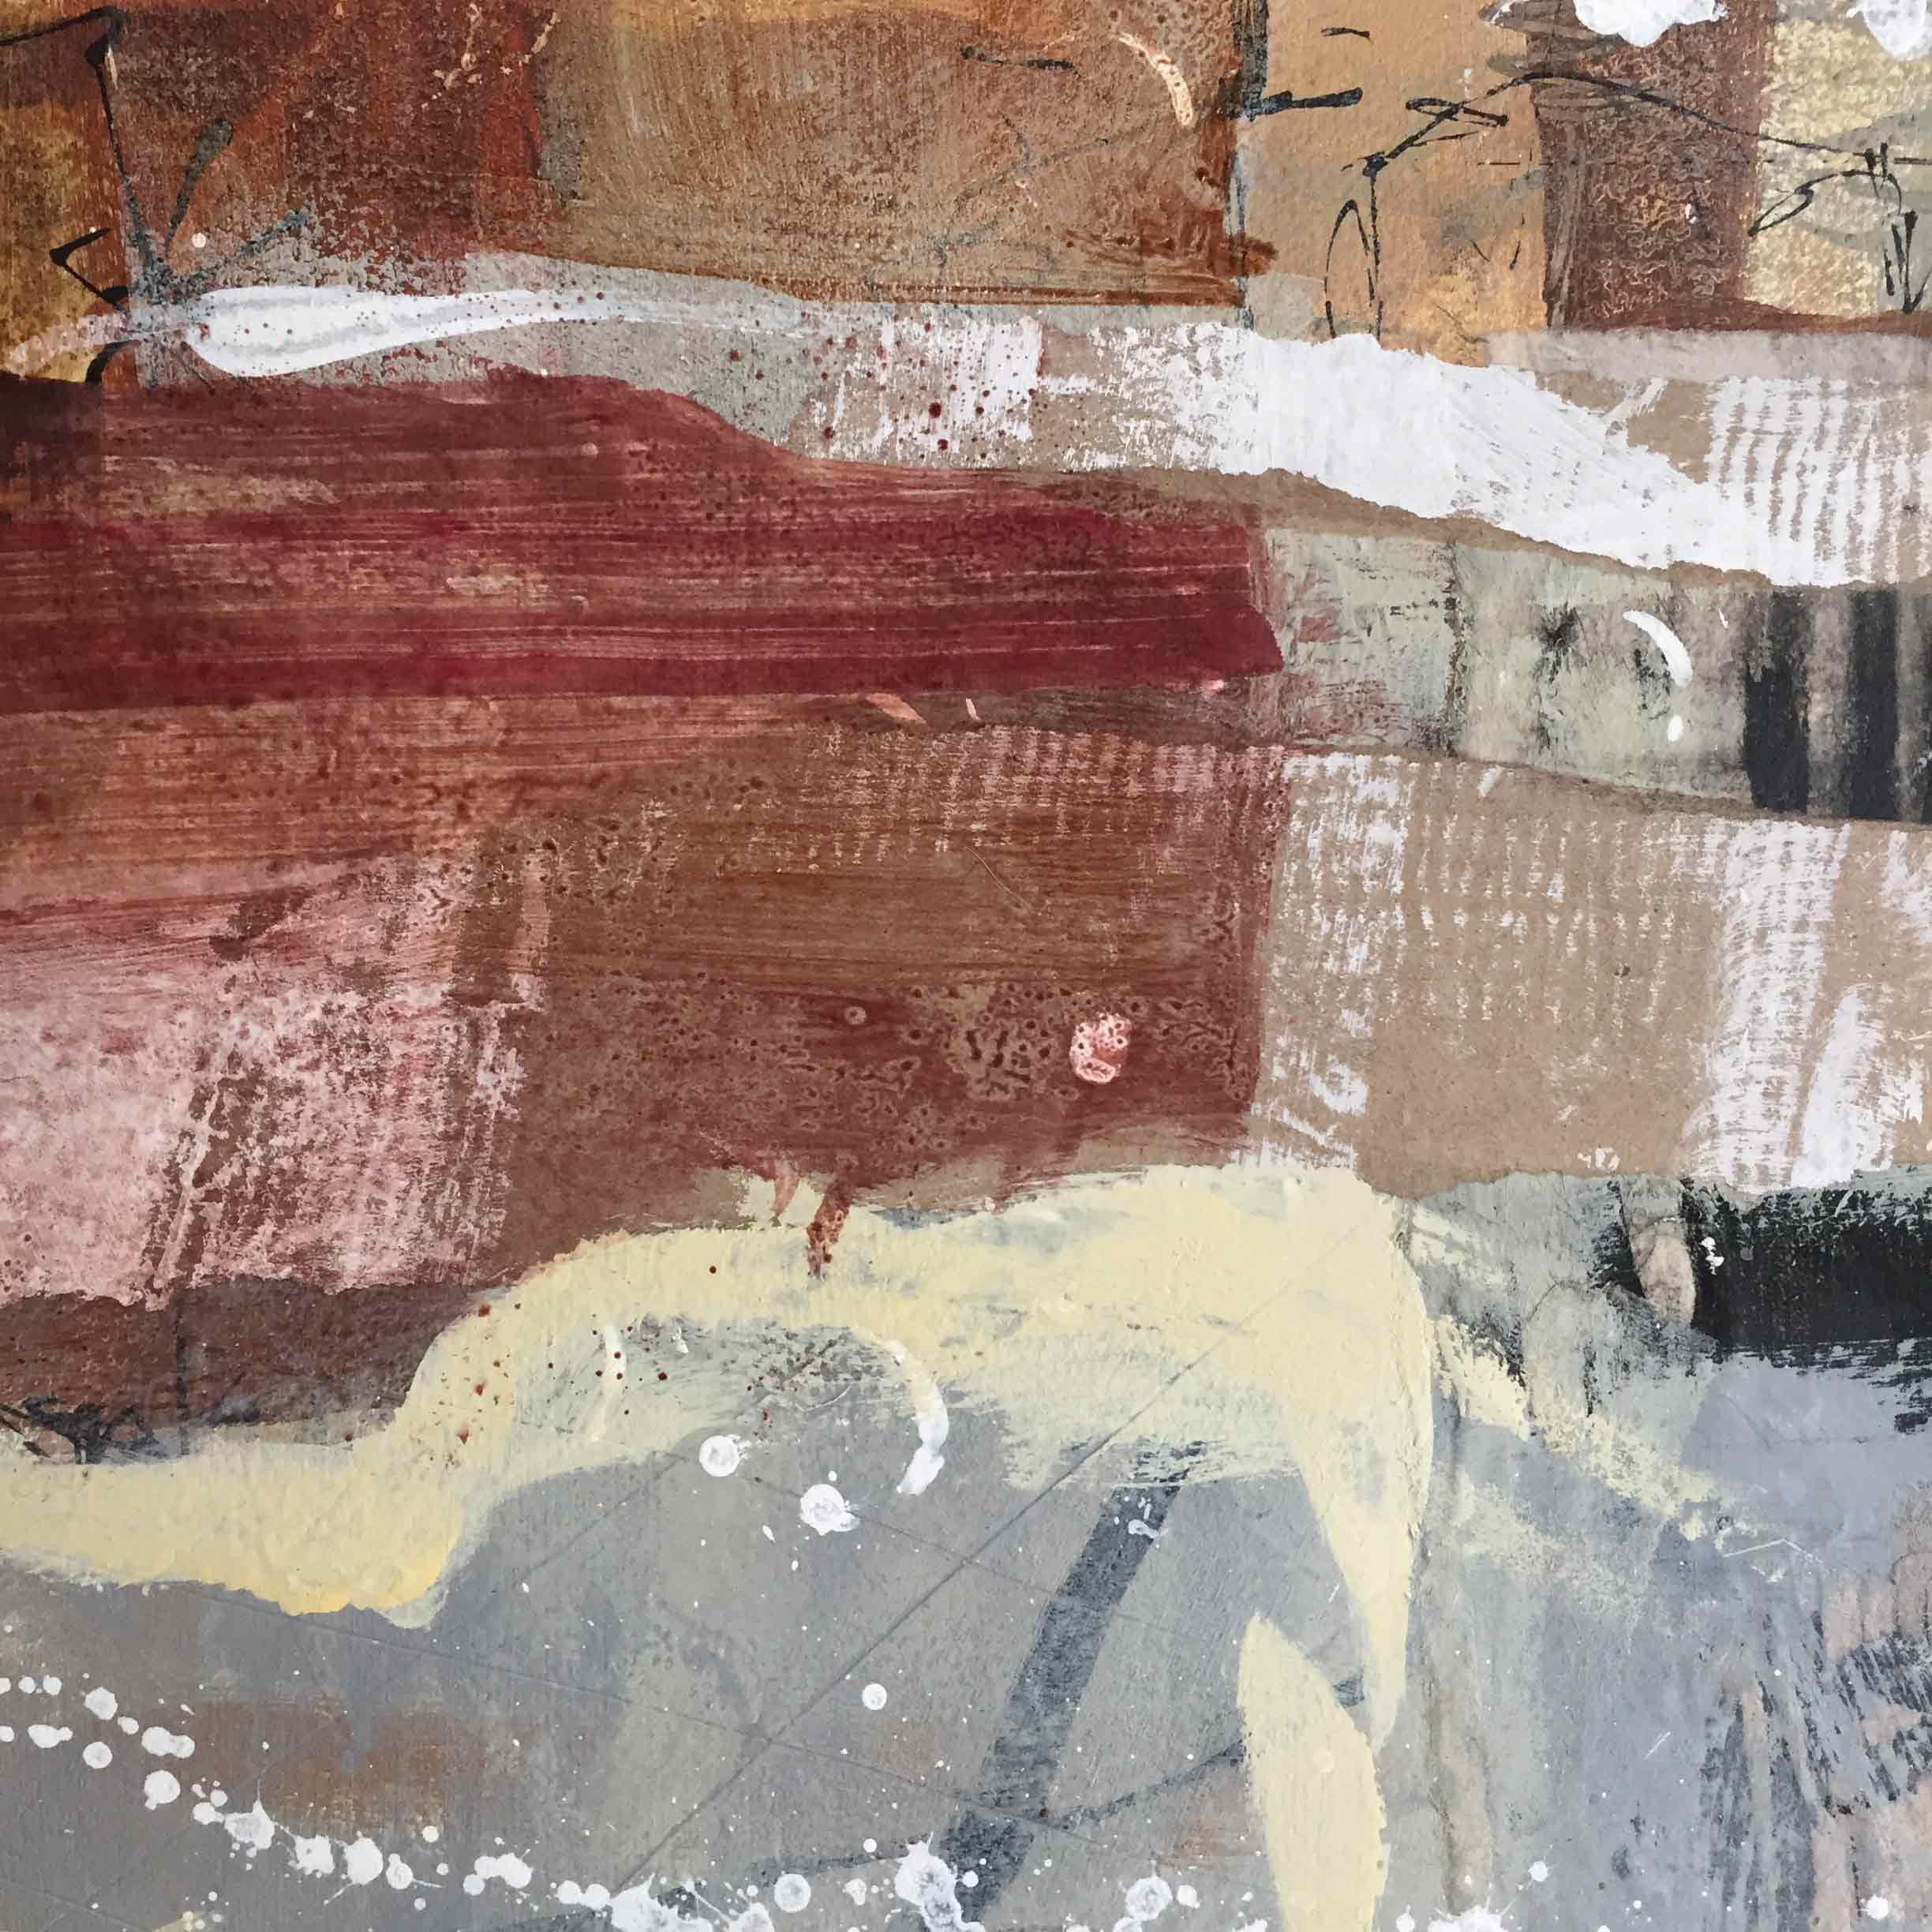 Detail of work done by Janet Jaffke at Blueberry View Artist Retreat